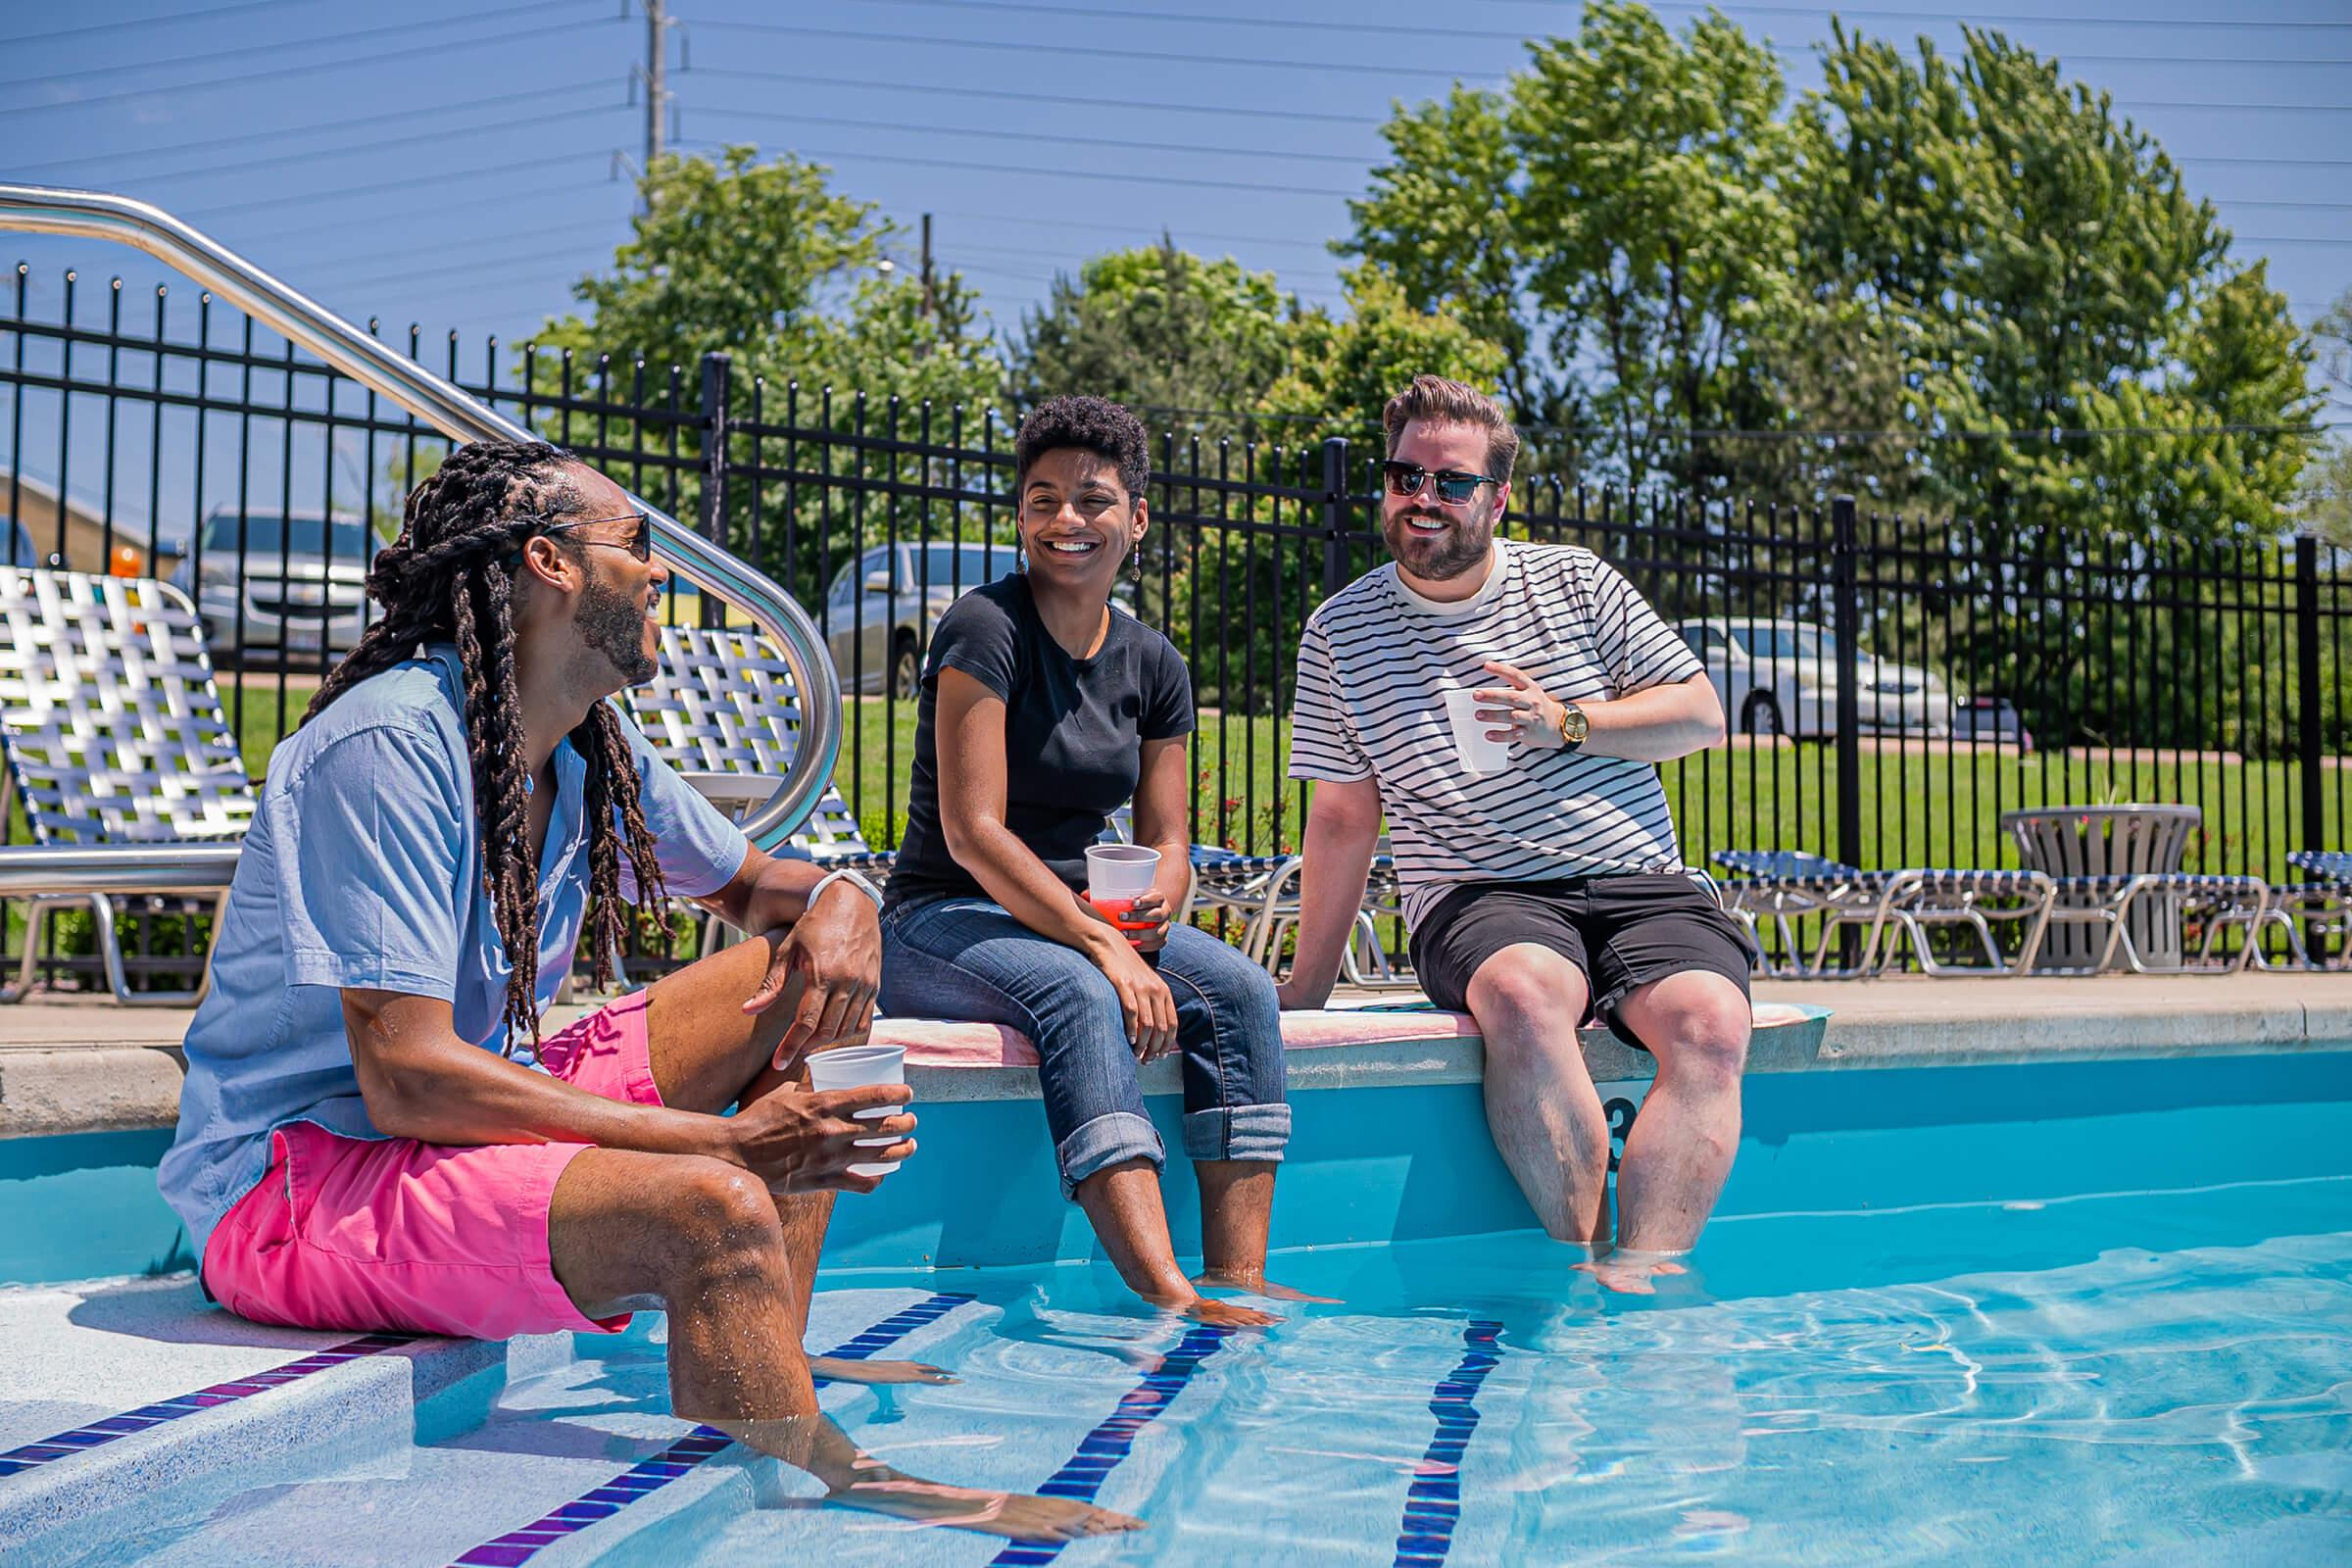 a group of people sitting in a pool of water